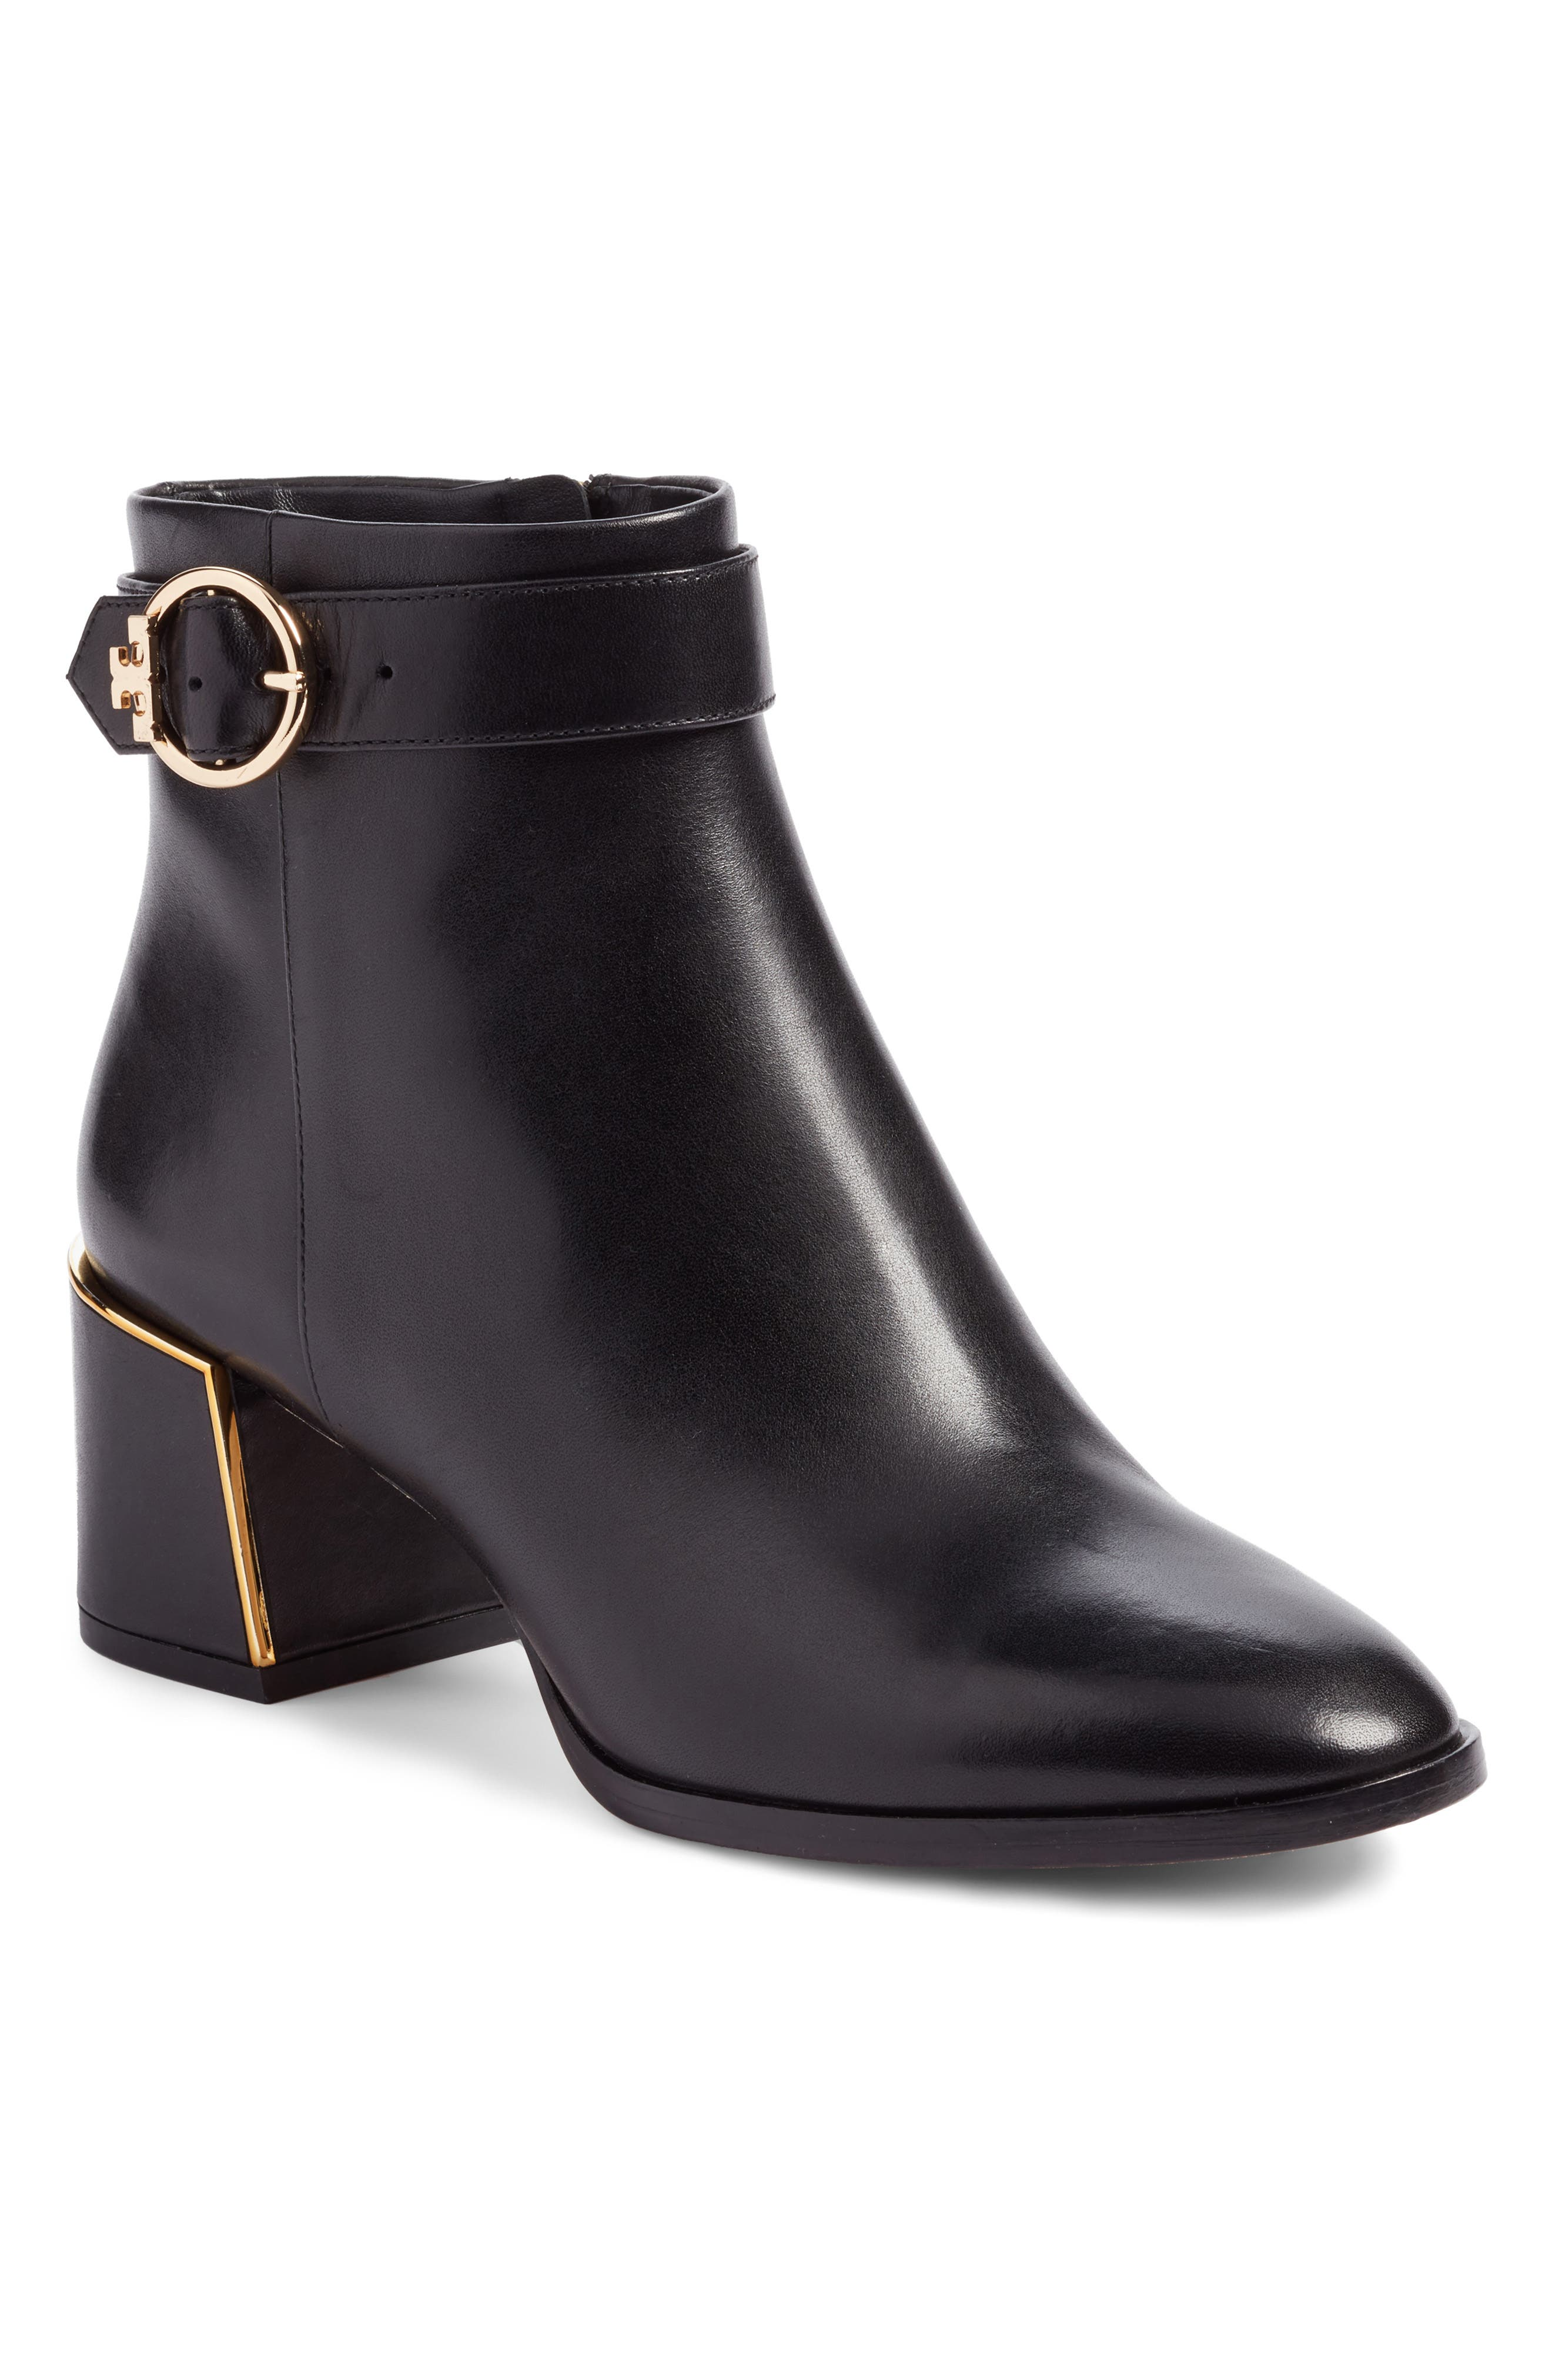 Tory Burch Sofia Buckle Strap Bootie (Women)